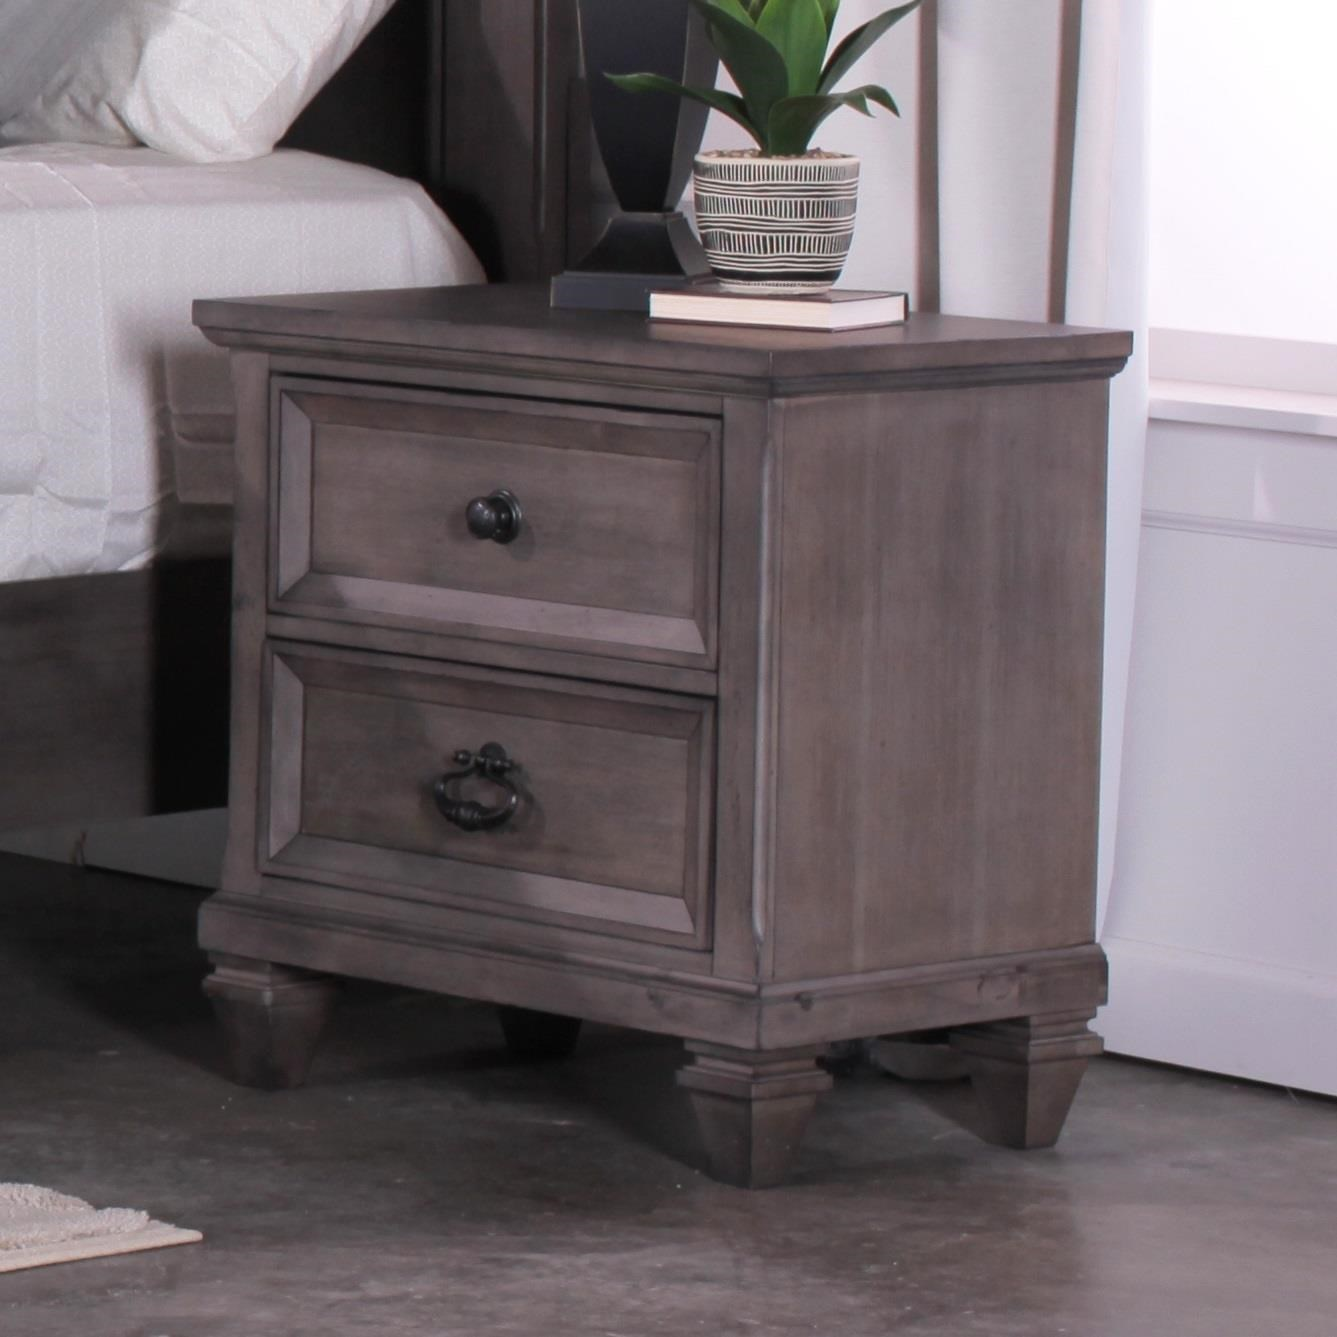 New Classic Gibraltar Nightstand With USB Chargers